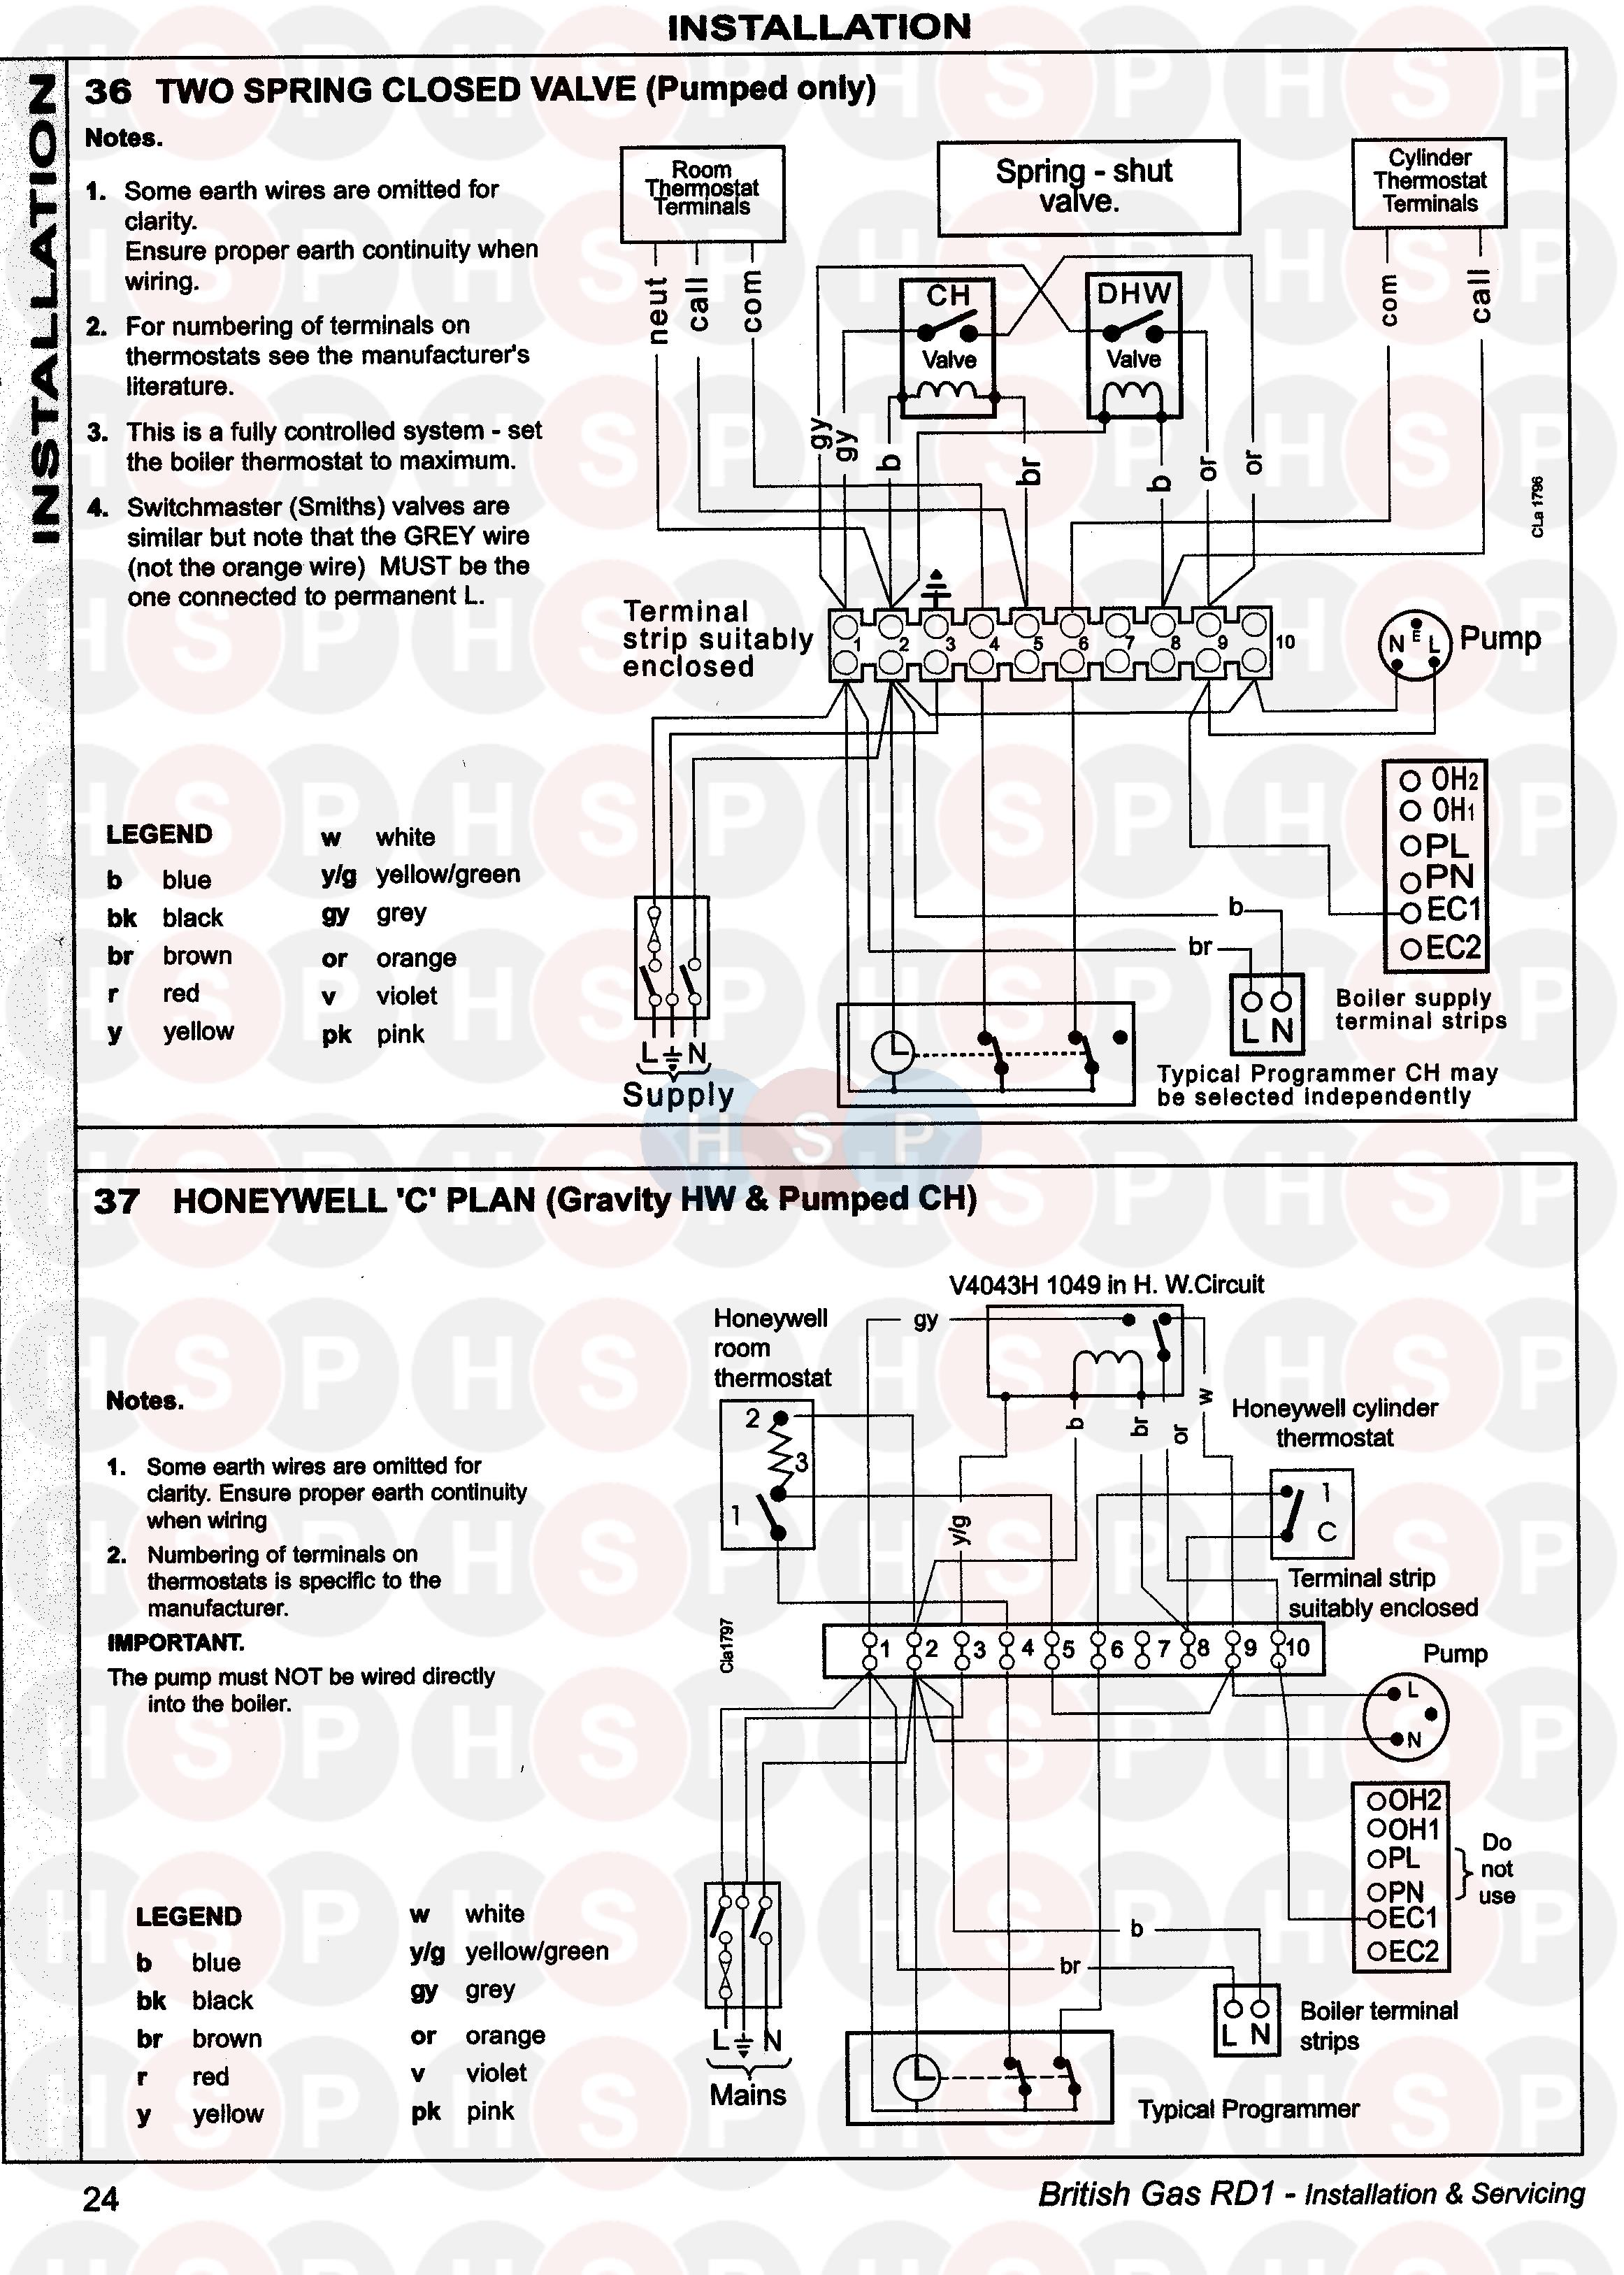 fuse box diagram for 2008 pontiac g5 wiring diagrams